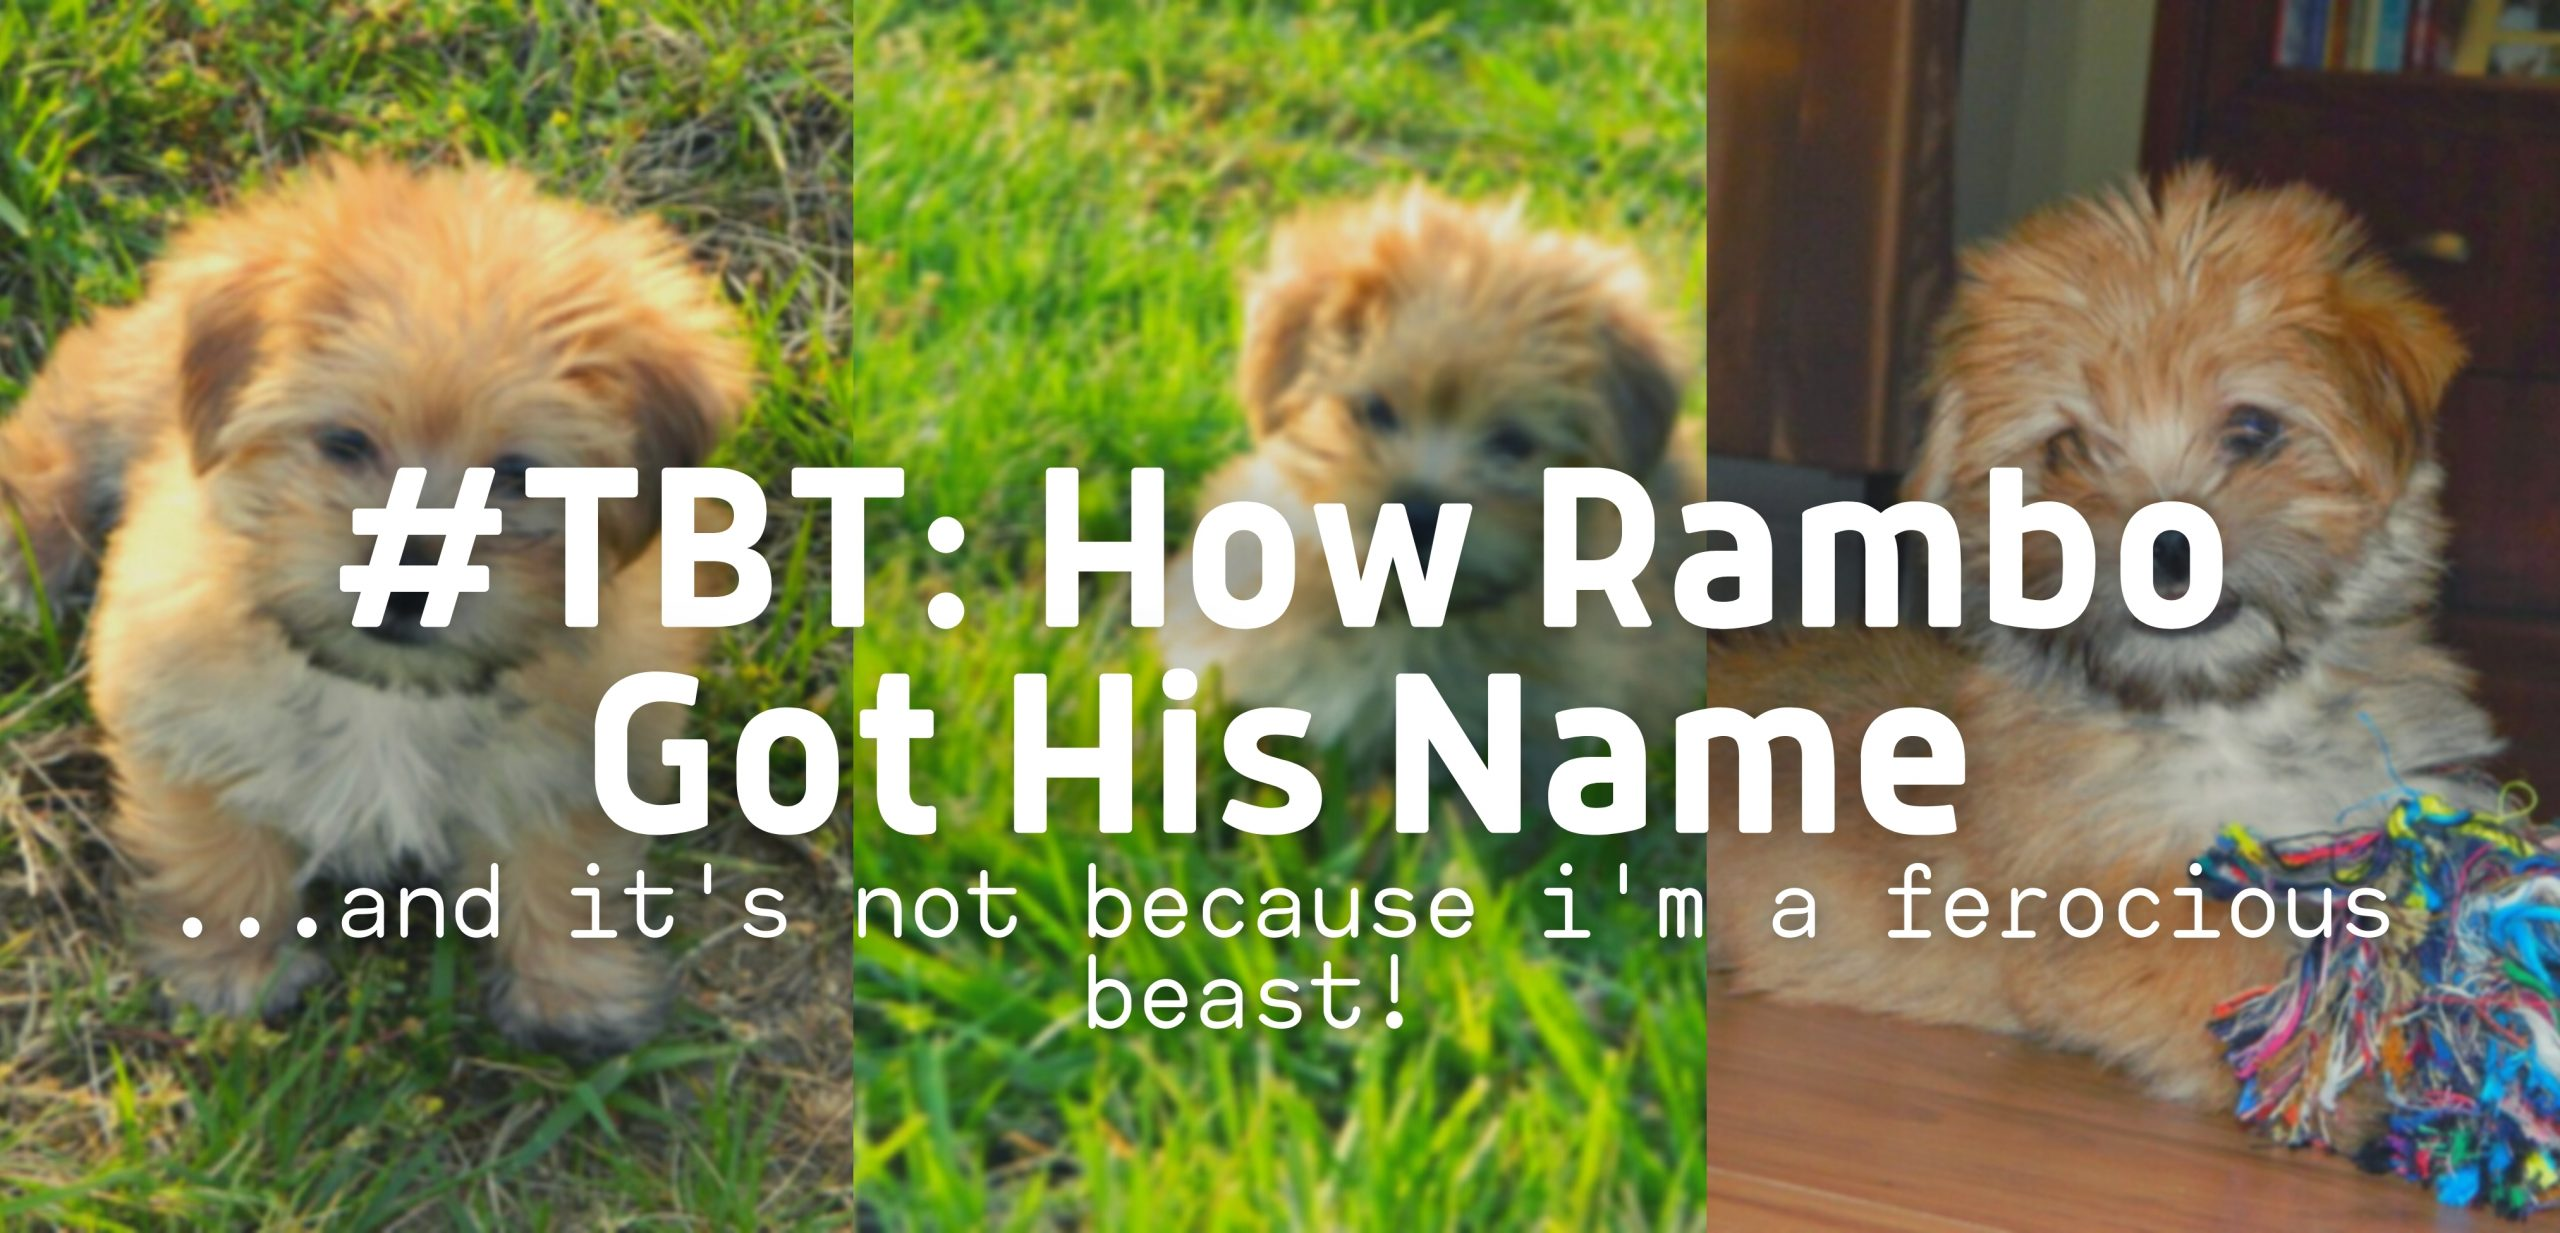 #TBT: How Rambo the Puppy Got His Name